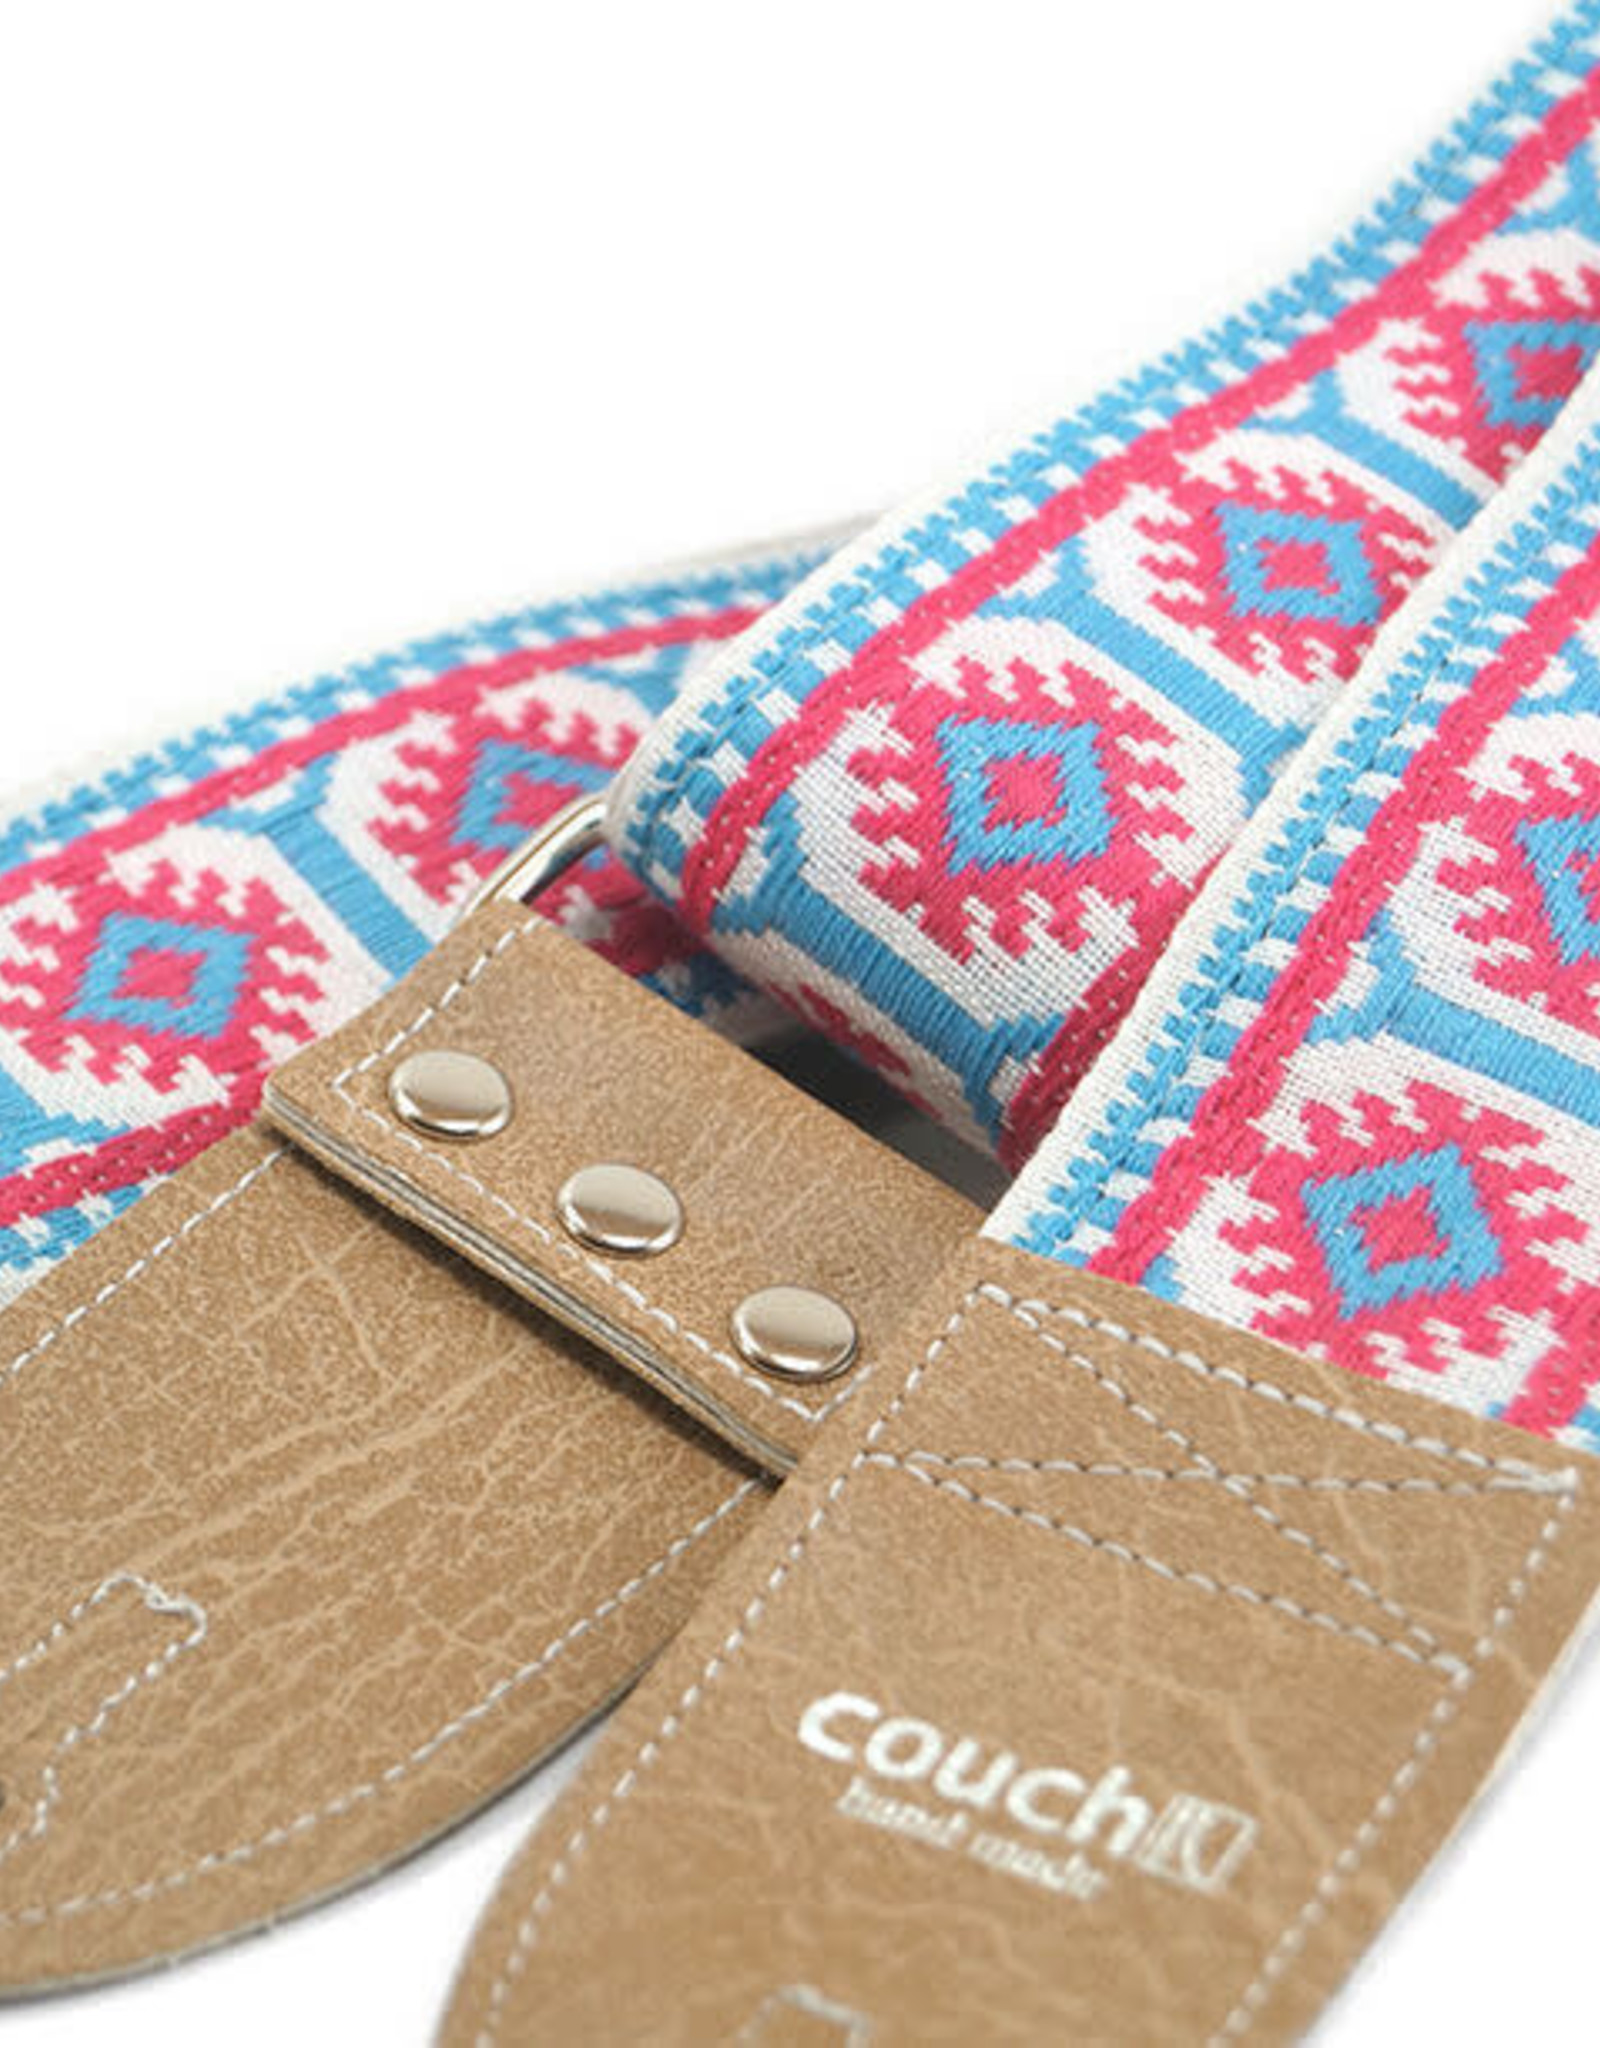 Couch Straps Couch Straps The Couch Imagining Sun Vintage Hippie Weave Boho Guitar Strap - Pink and Sky